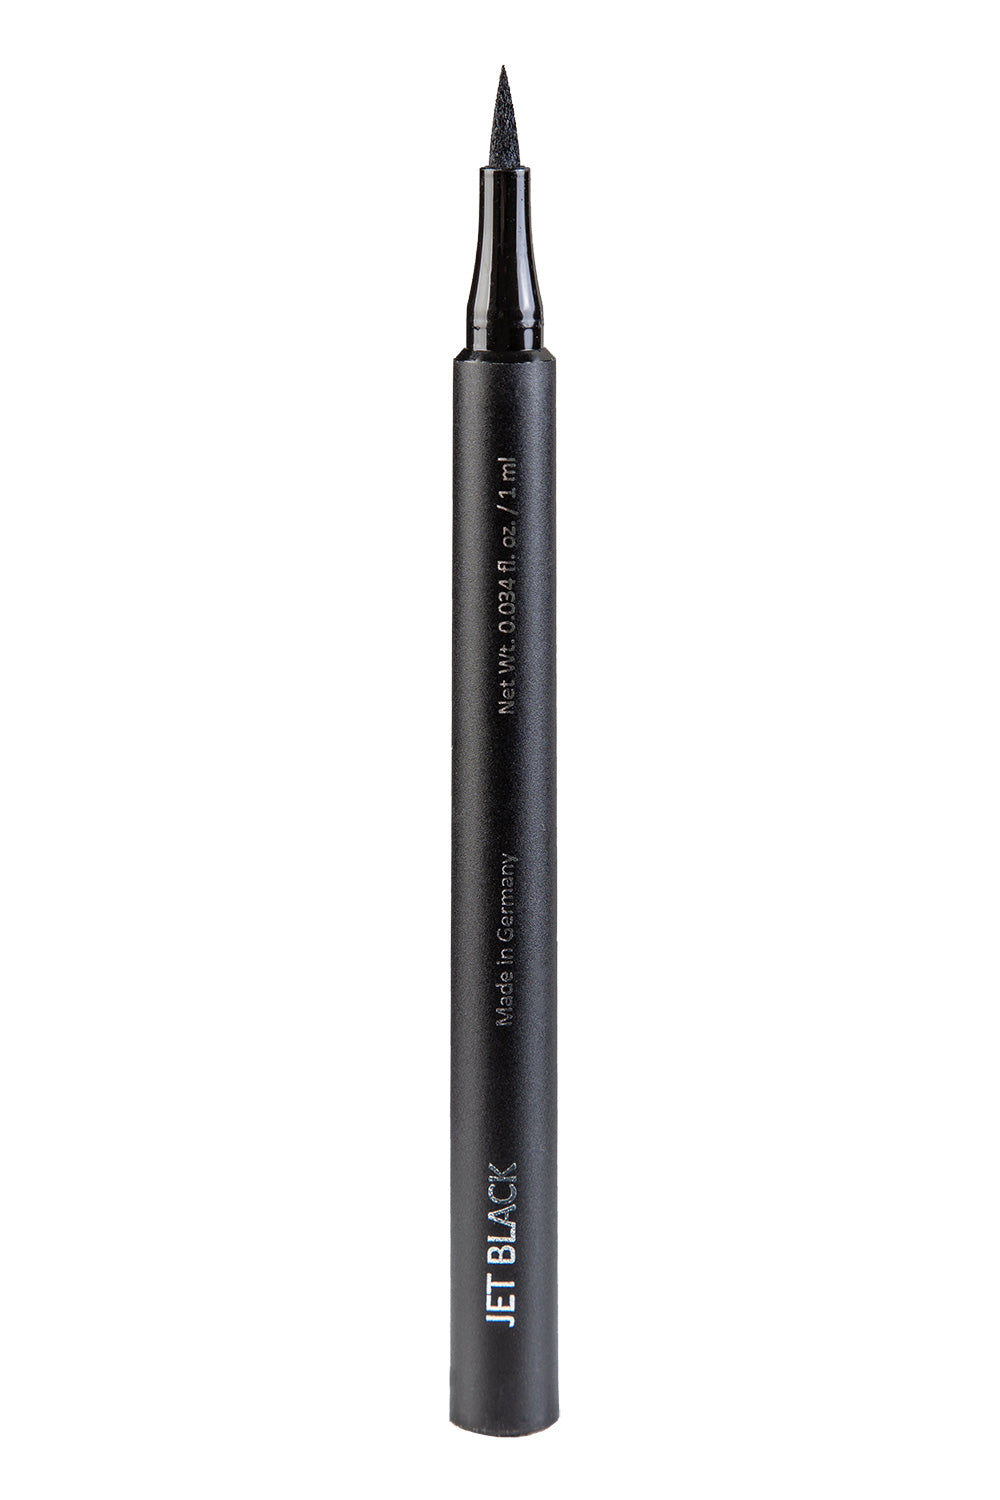 Jet Black - Type 4 Liquid Eyeliner Pen